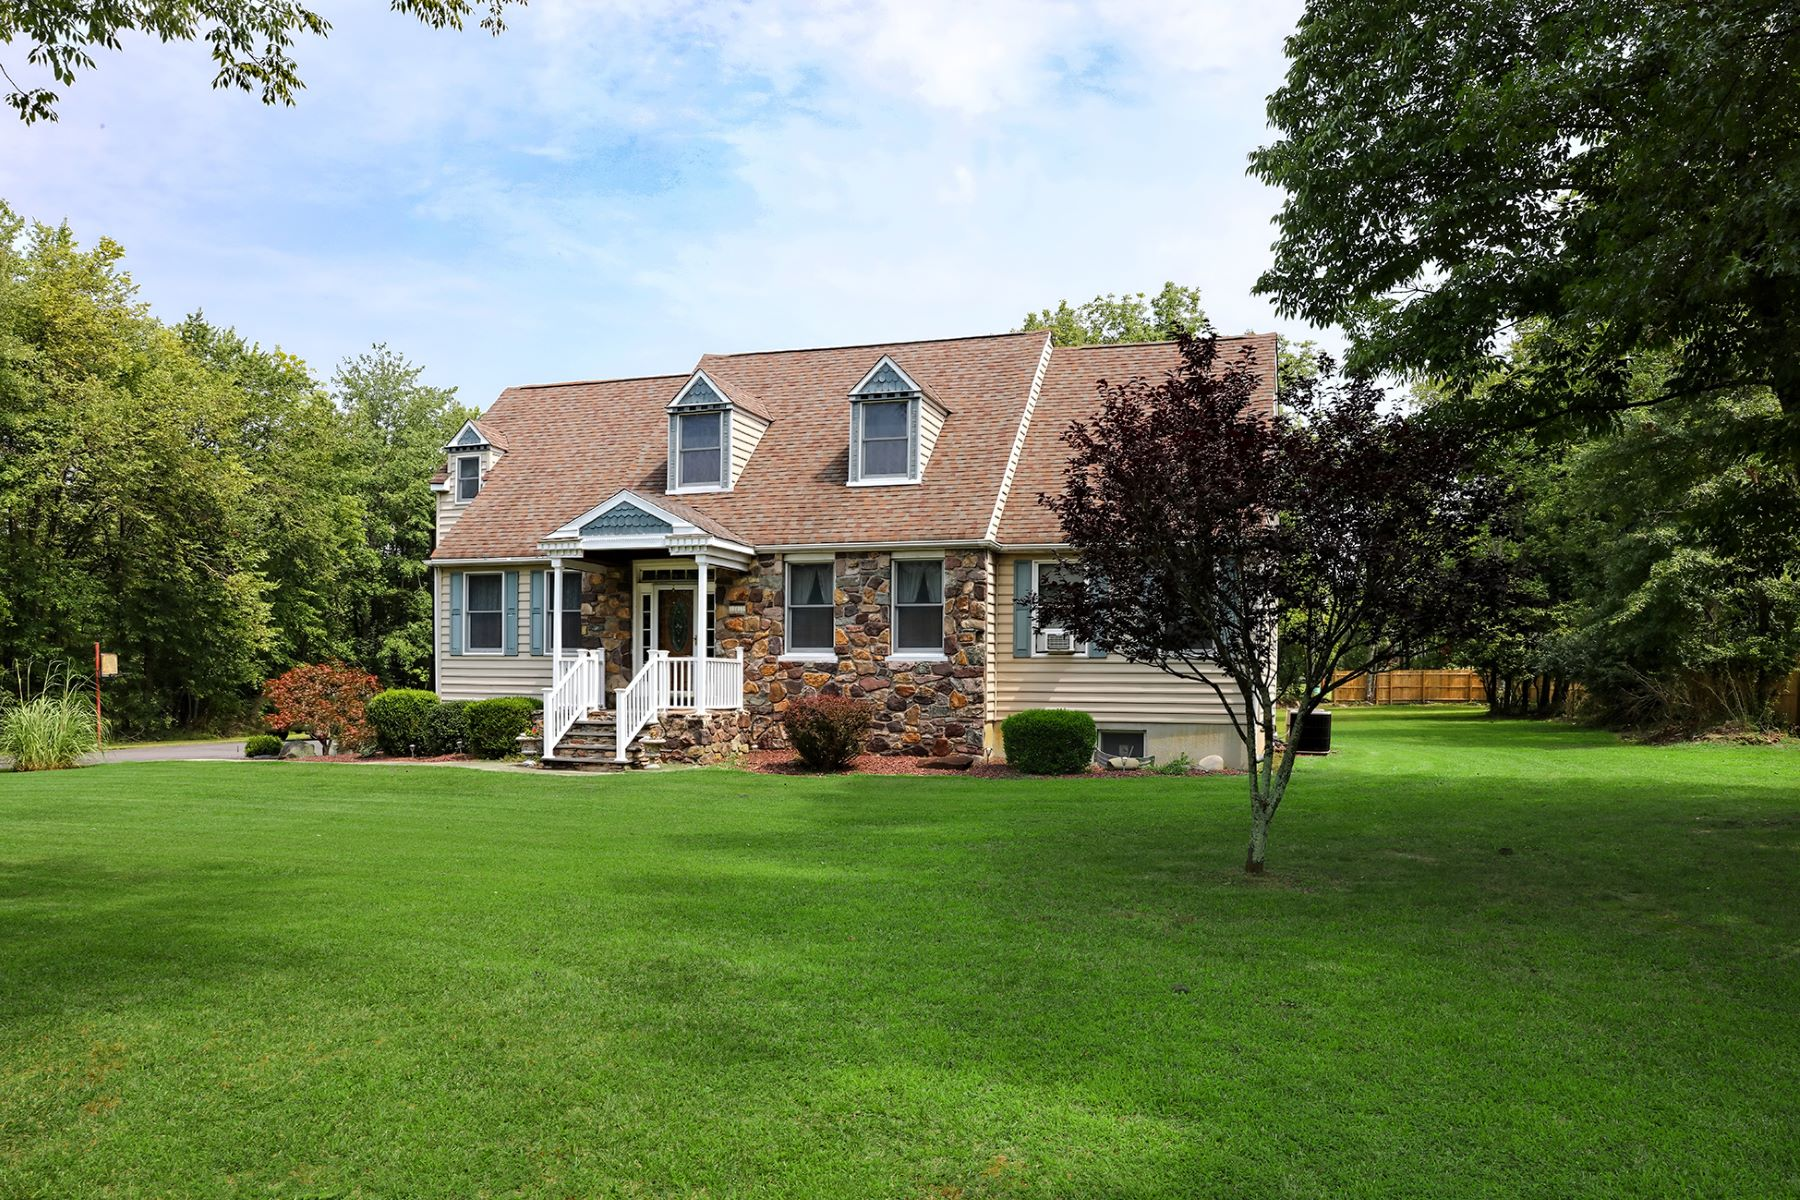 Single Family Home for Sale at A Bucolic Setting To Showcase This Custom Home 263 Goat Hill Road, Lambertville, New Jersey 08530 United States